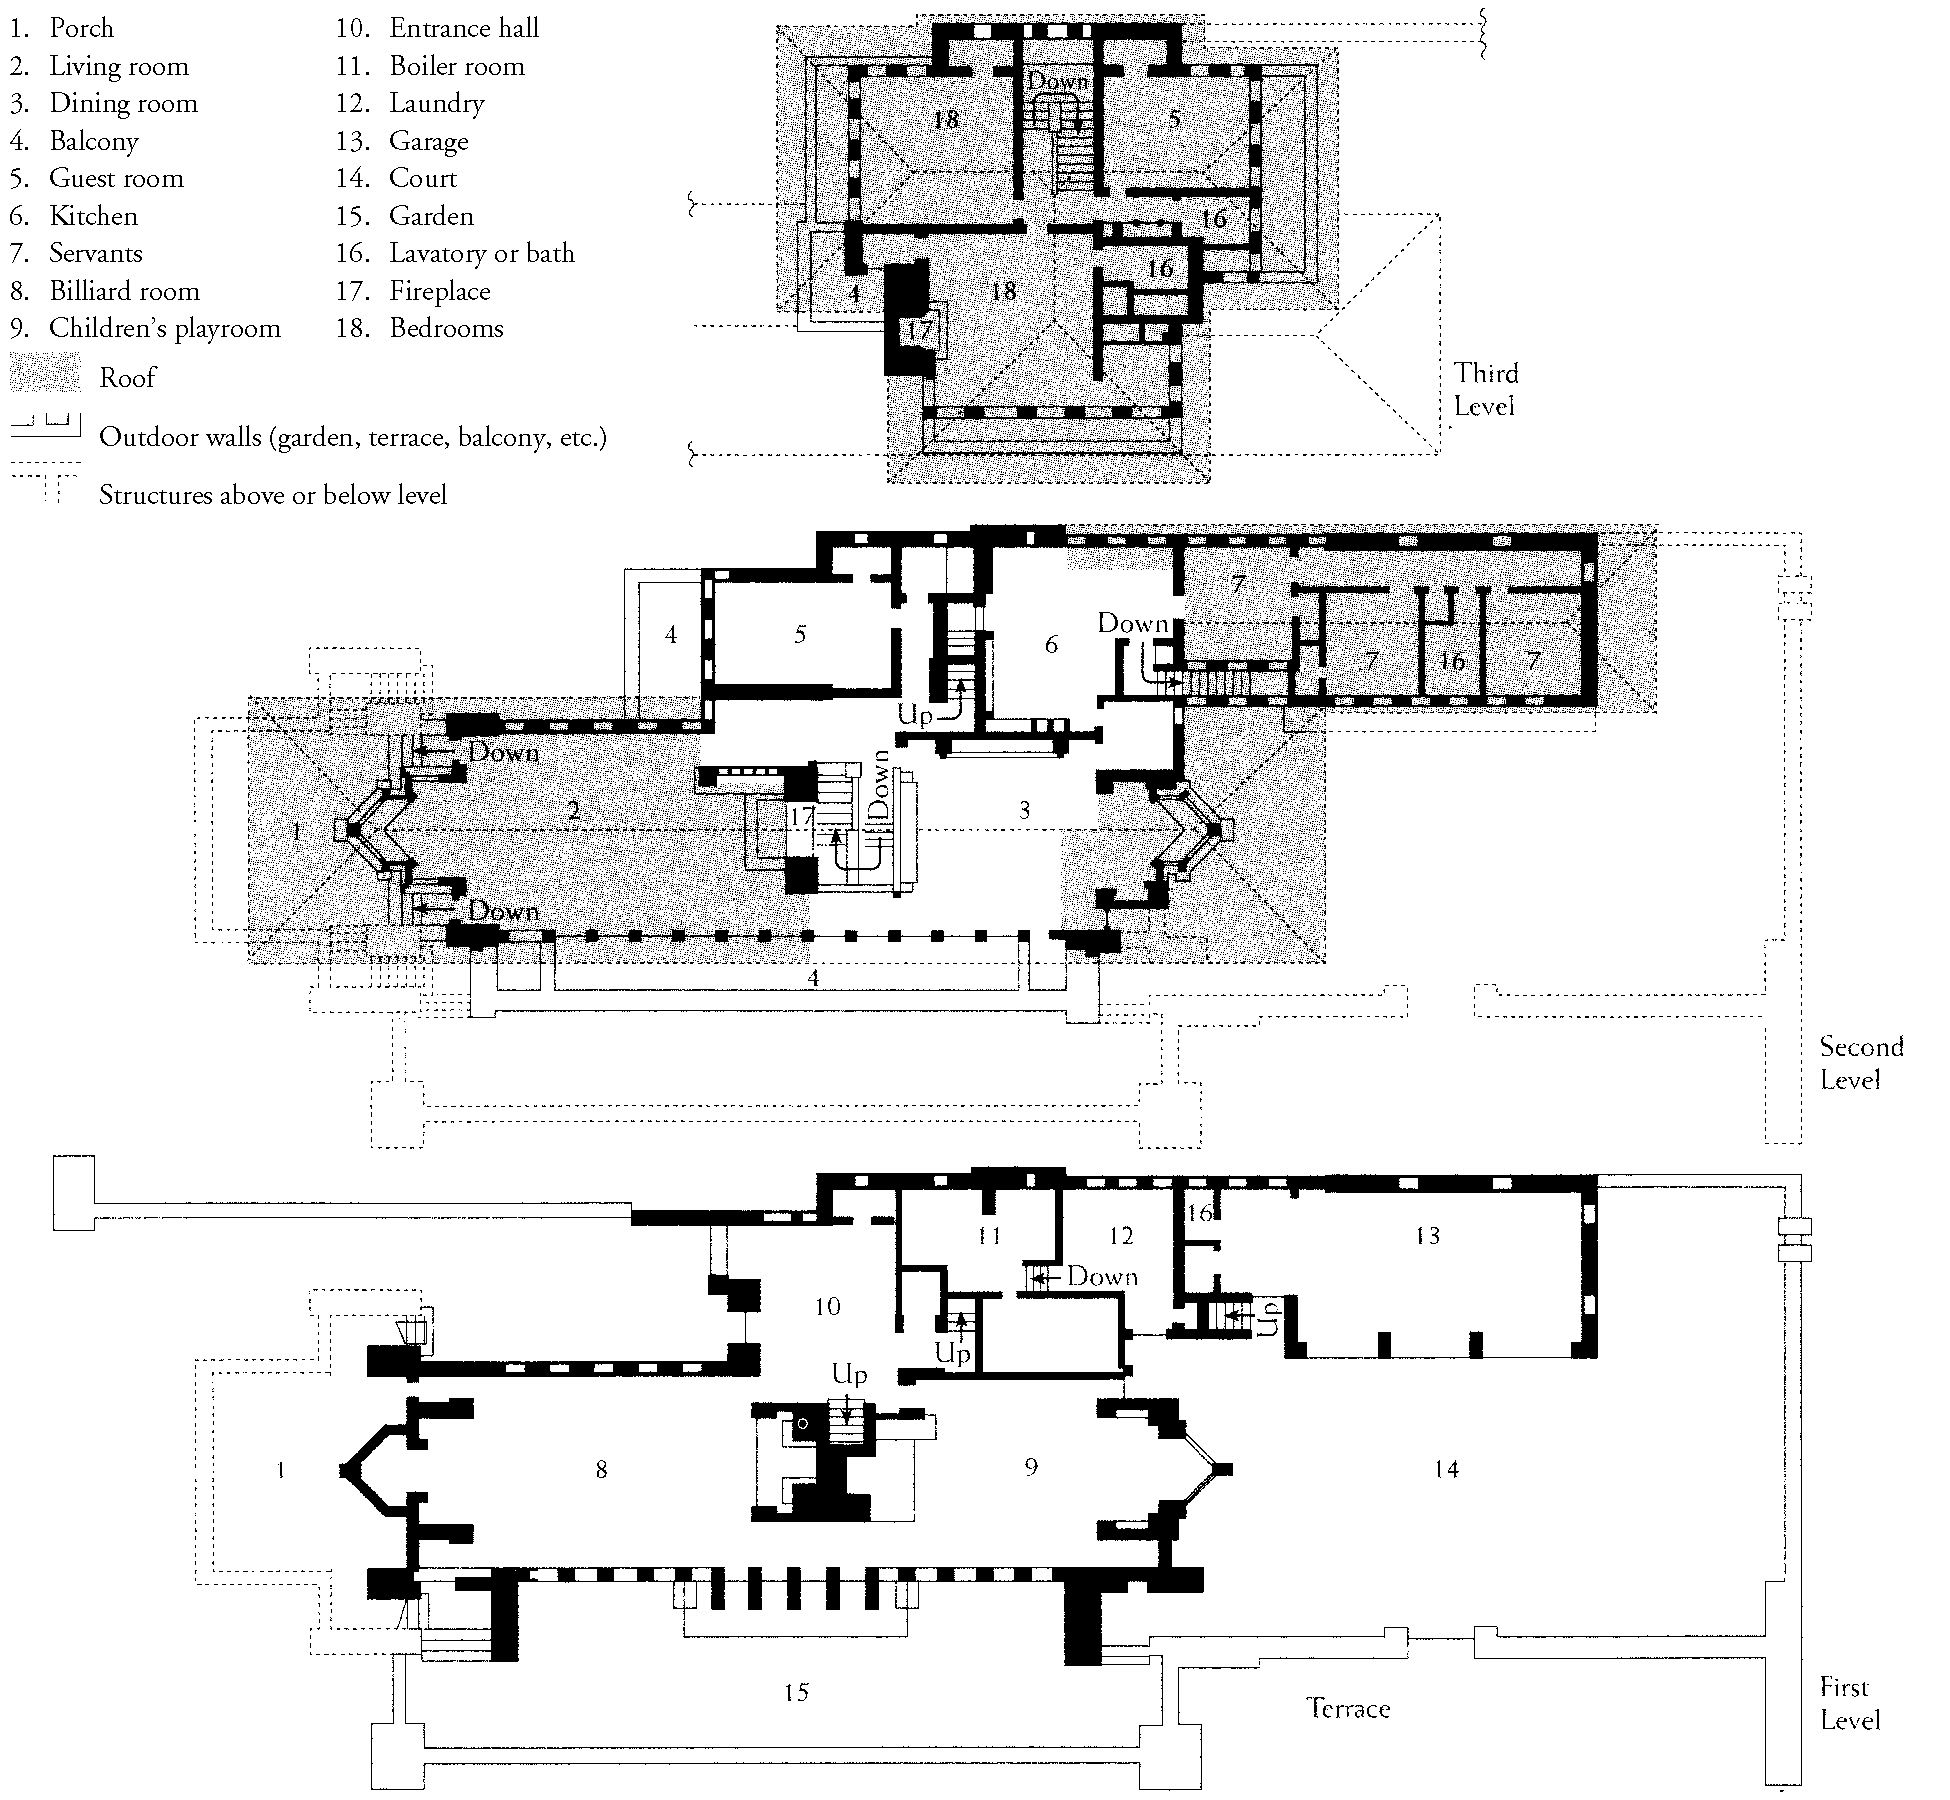 robie house floor plan architectural designs rh lifewithgracebook com